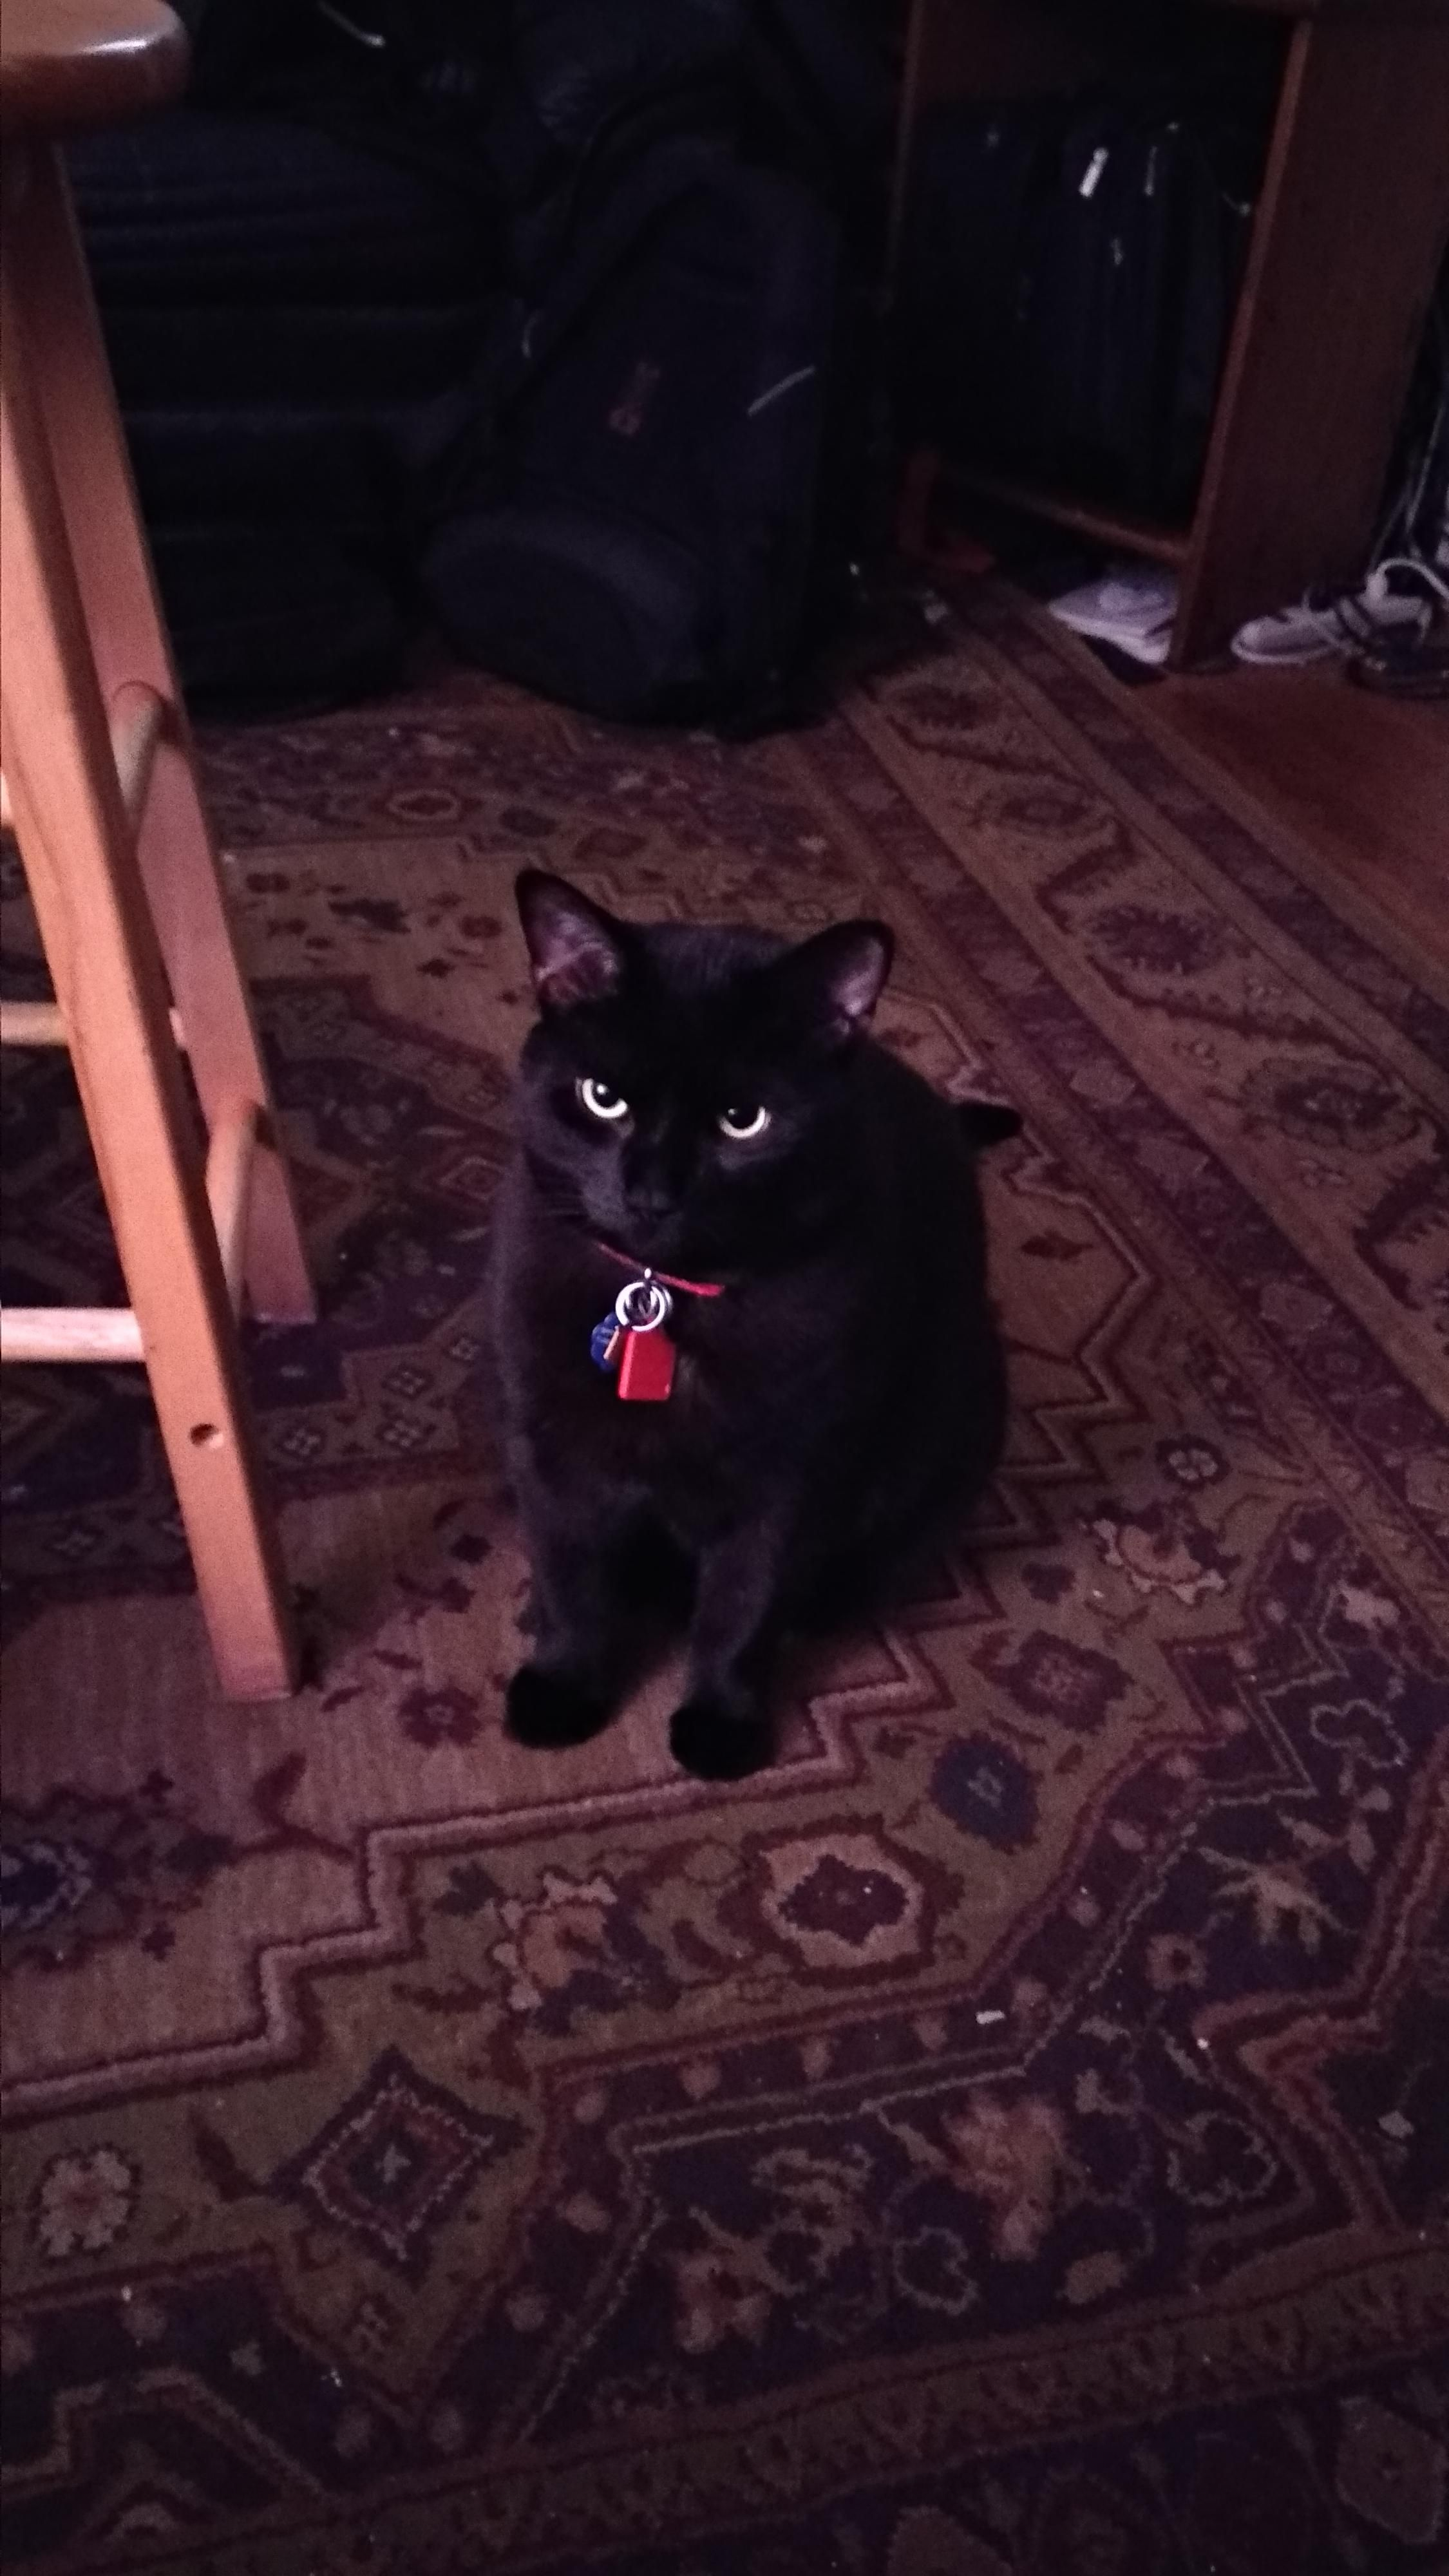 My Baby Toby We Got Him A Year Ago Yesterday Hello There Bright People Are You Catlover Or Have You Any Cat Having Kittens Cutest Kitten Breeds Crazy Cats